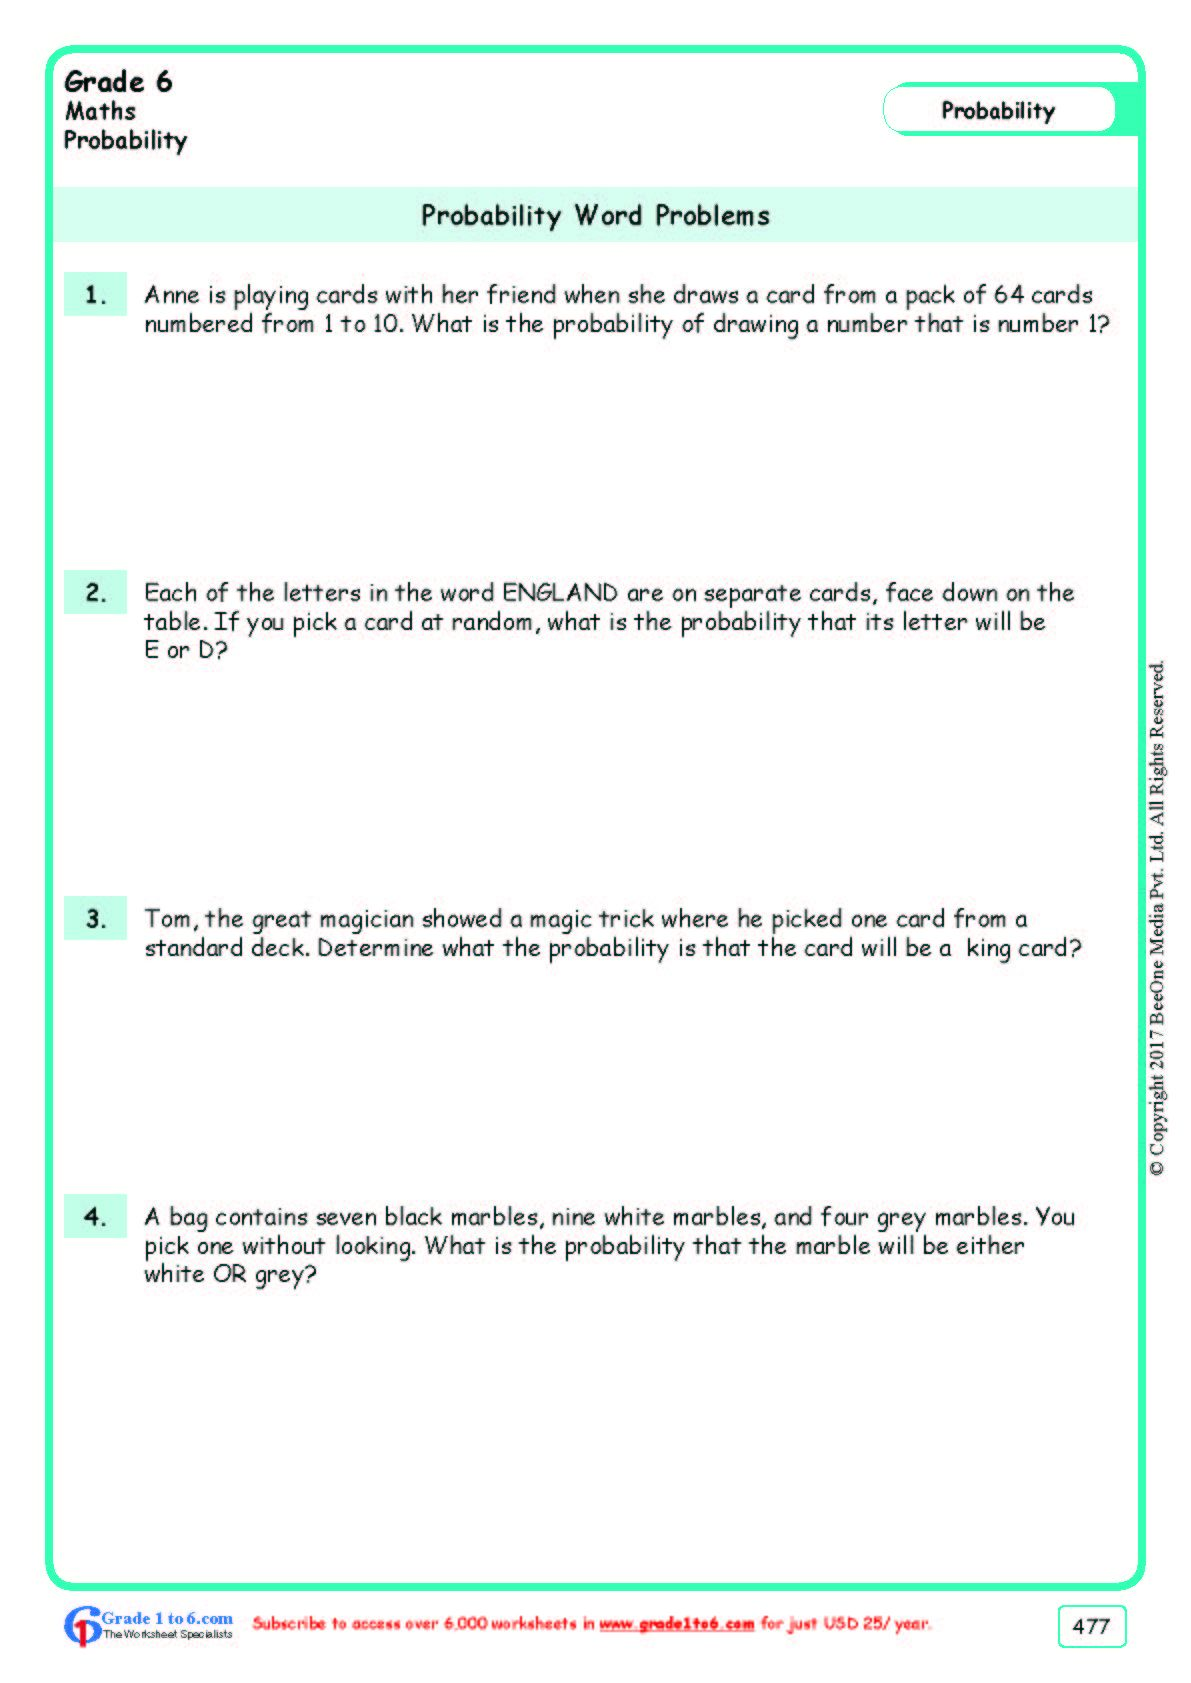 Worksheet Grade 6 Math Probability Word Problems In 2020 Probability Word Problems Word Problem Worksheets Free Math Worksheets